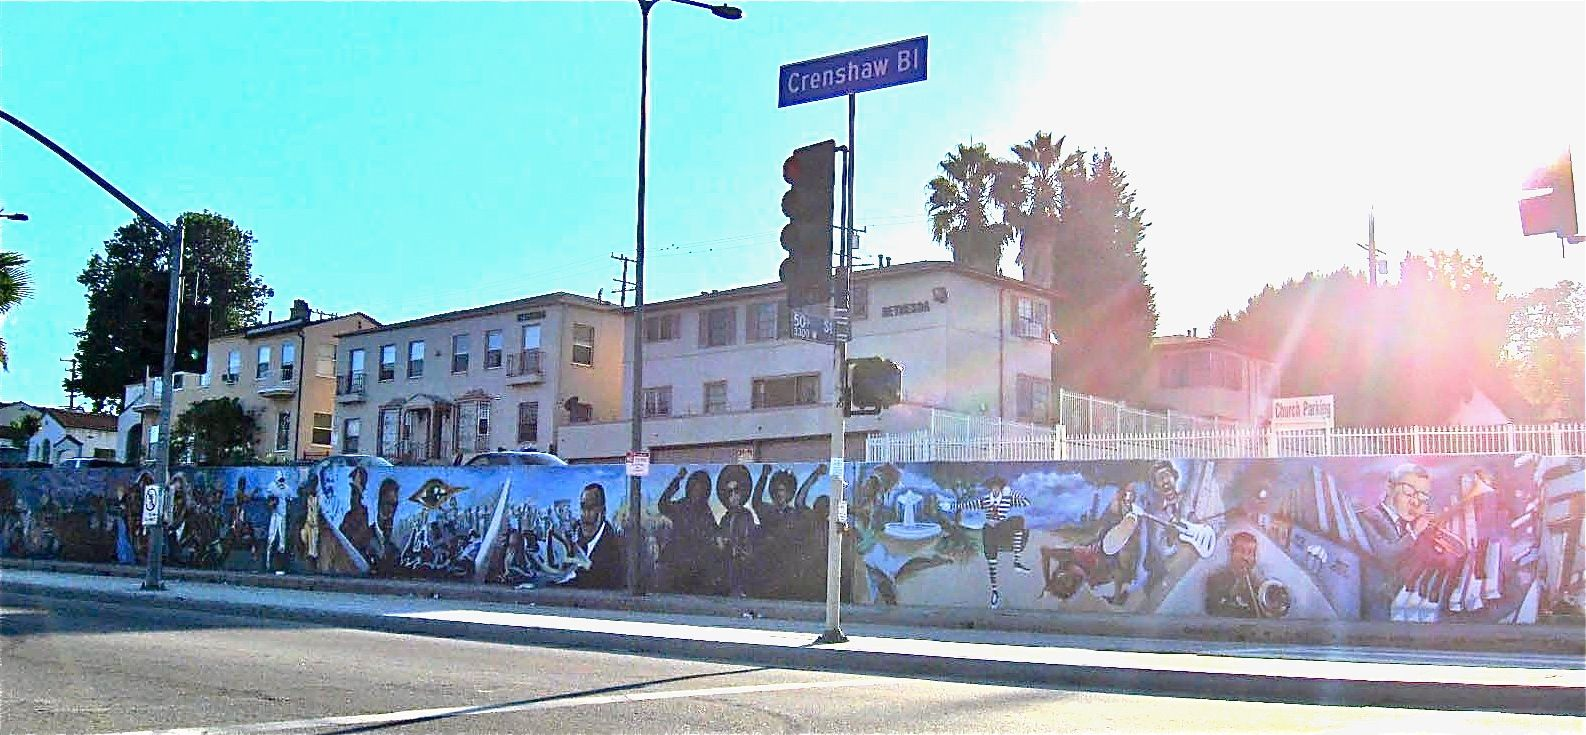 The Crenshaw mural is located on Crenshaw Blvd.The type of